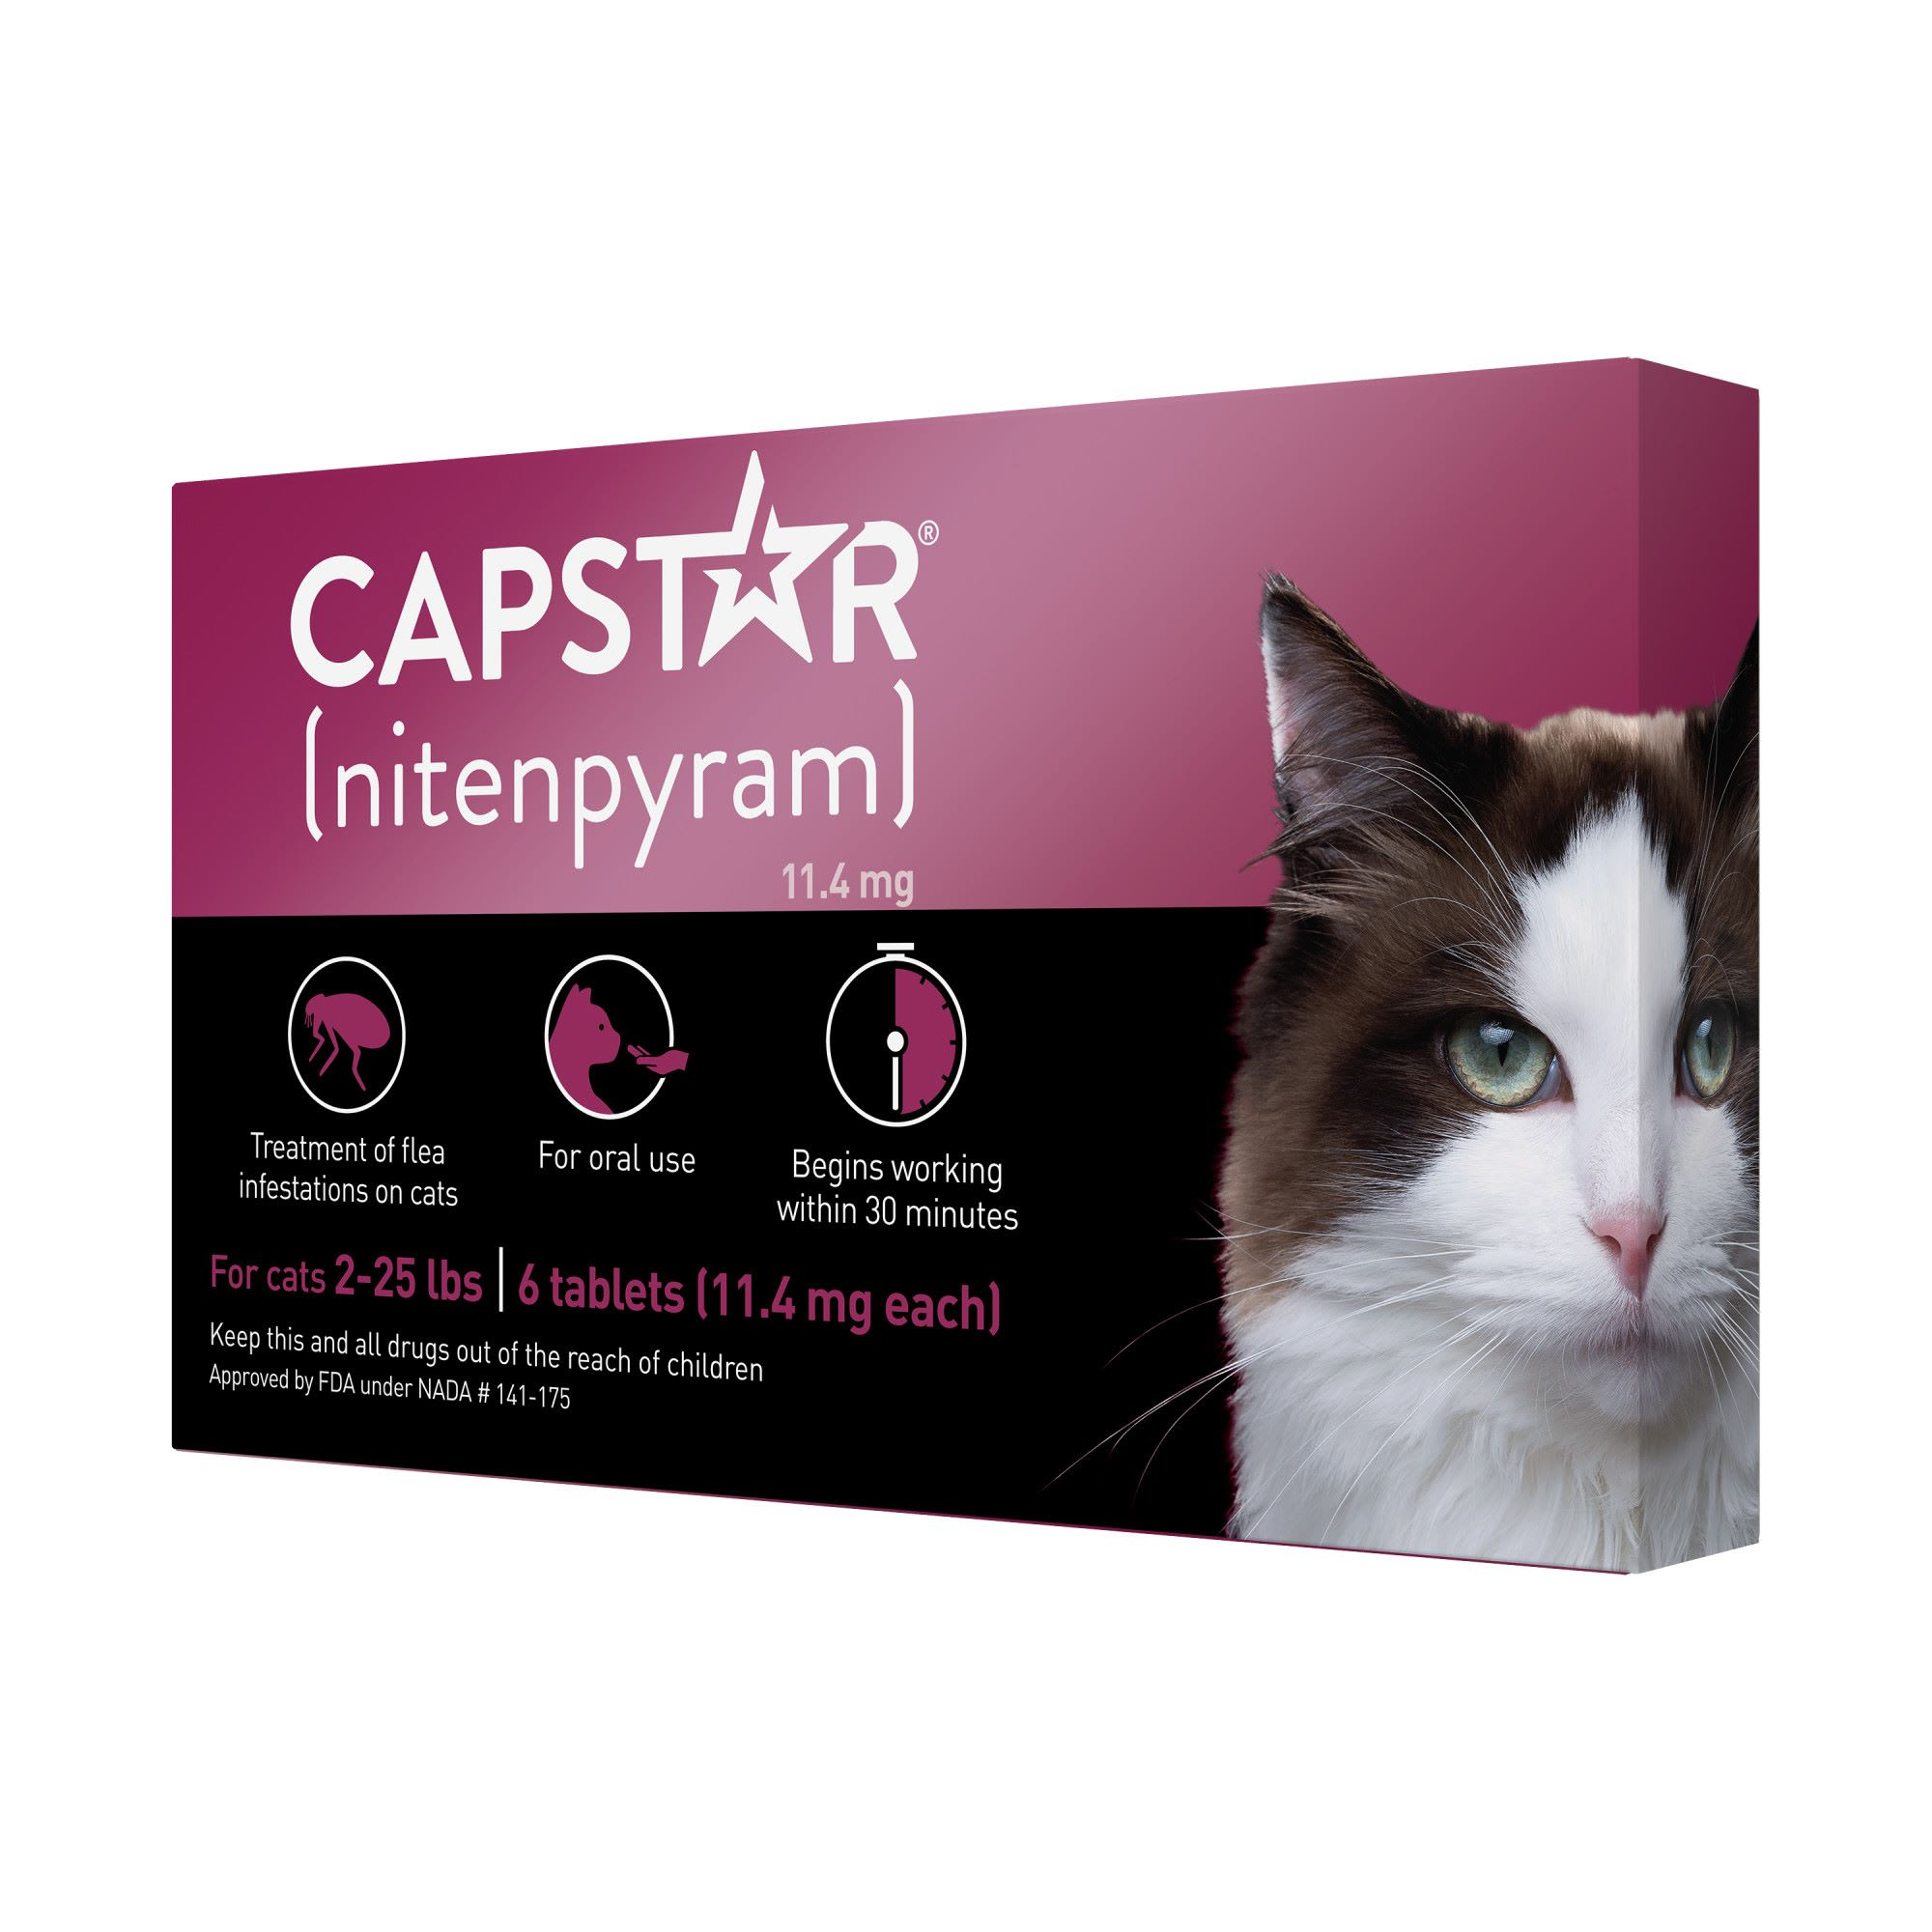 Capstar Flea Tablets For Cats 2 25 Lbs Count Of 6 Petco